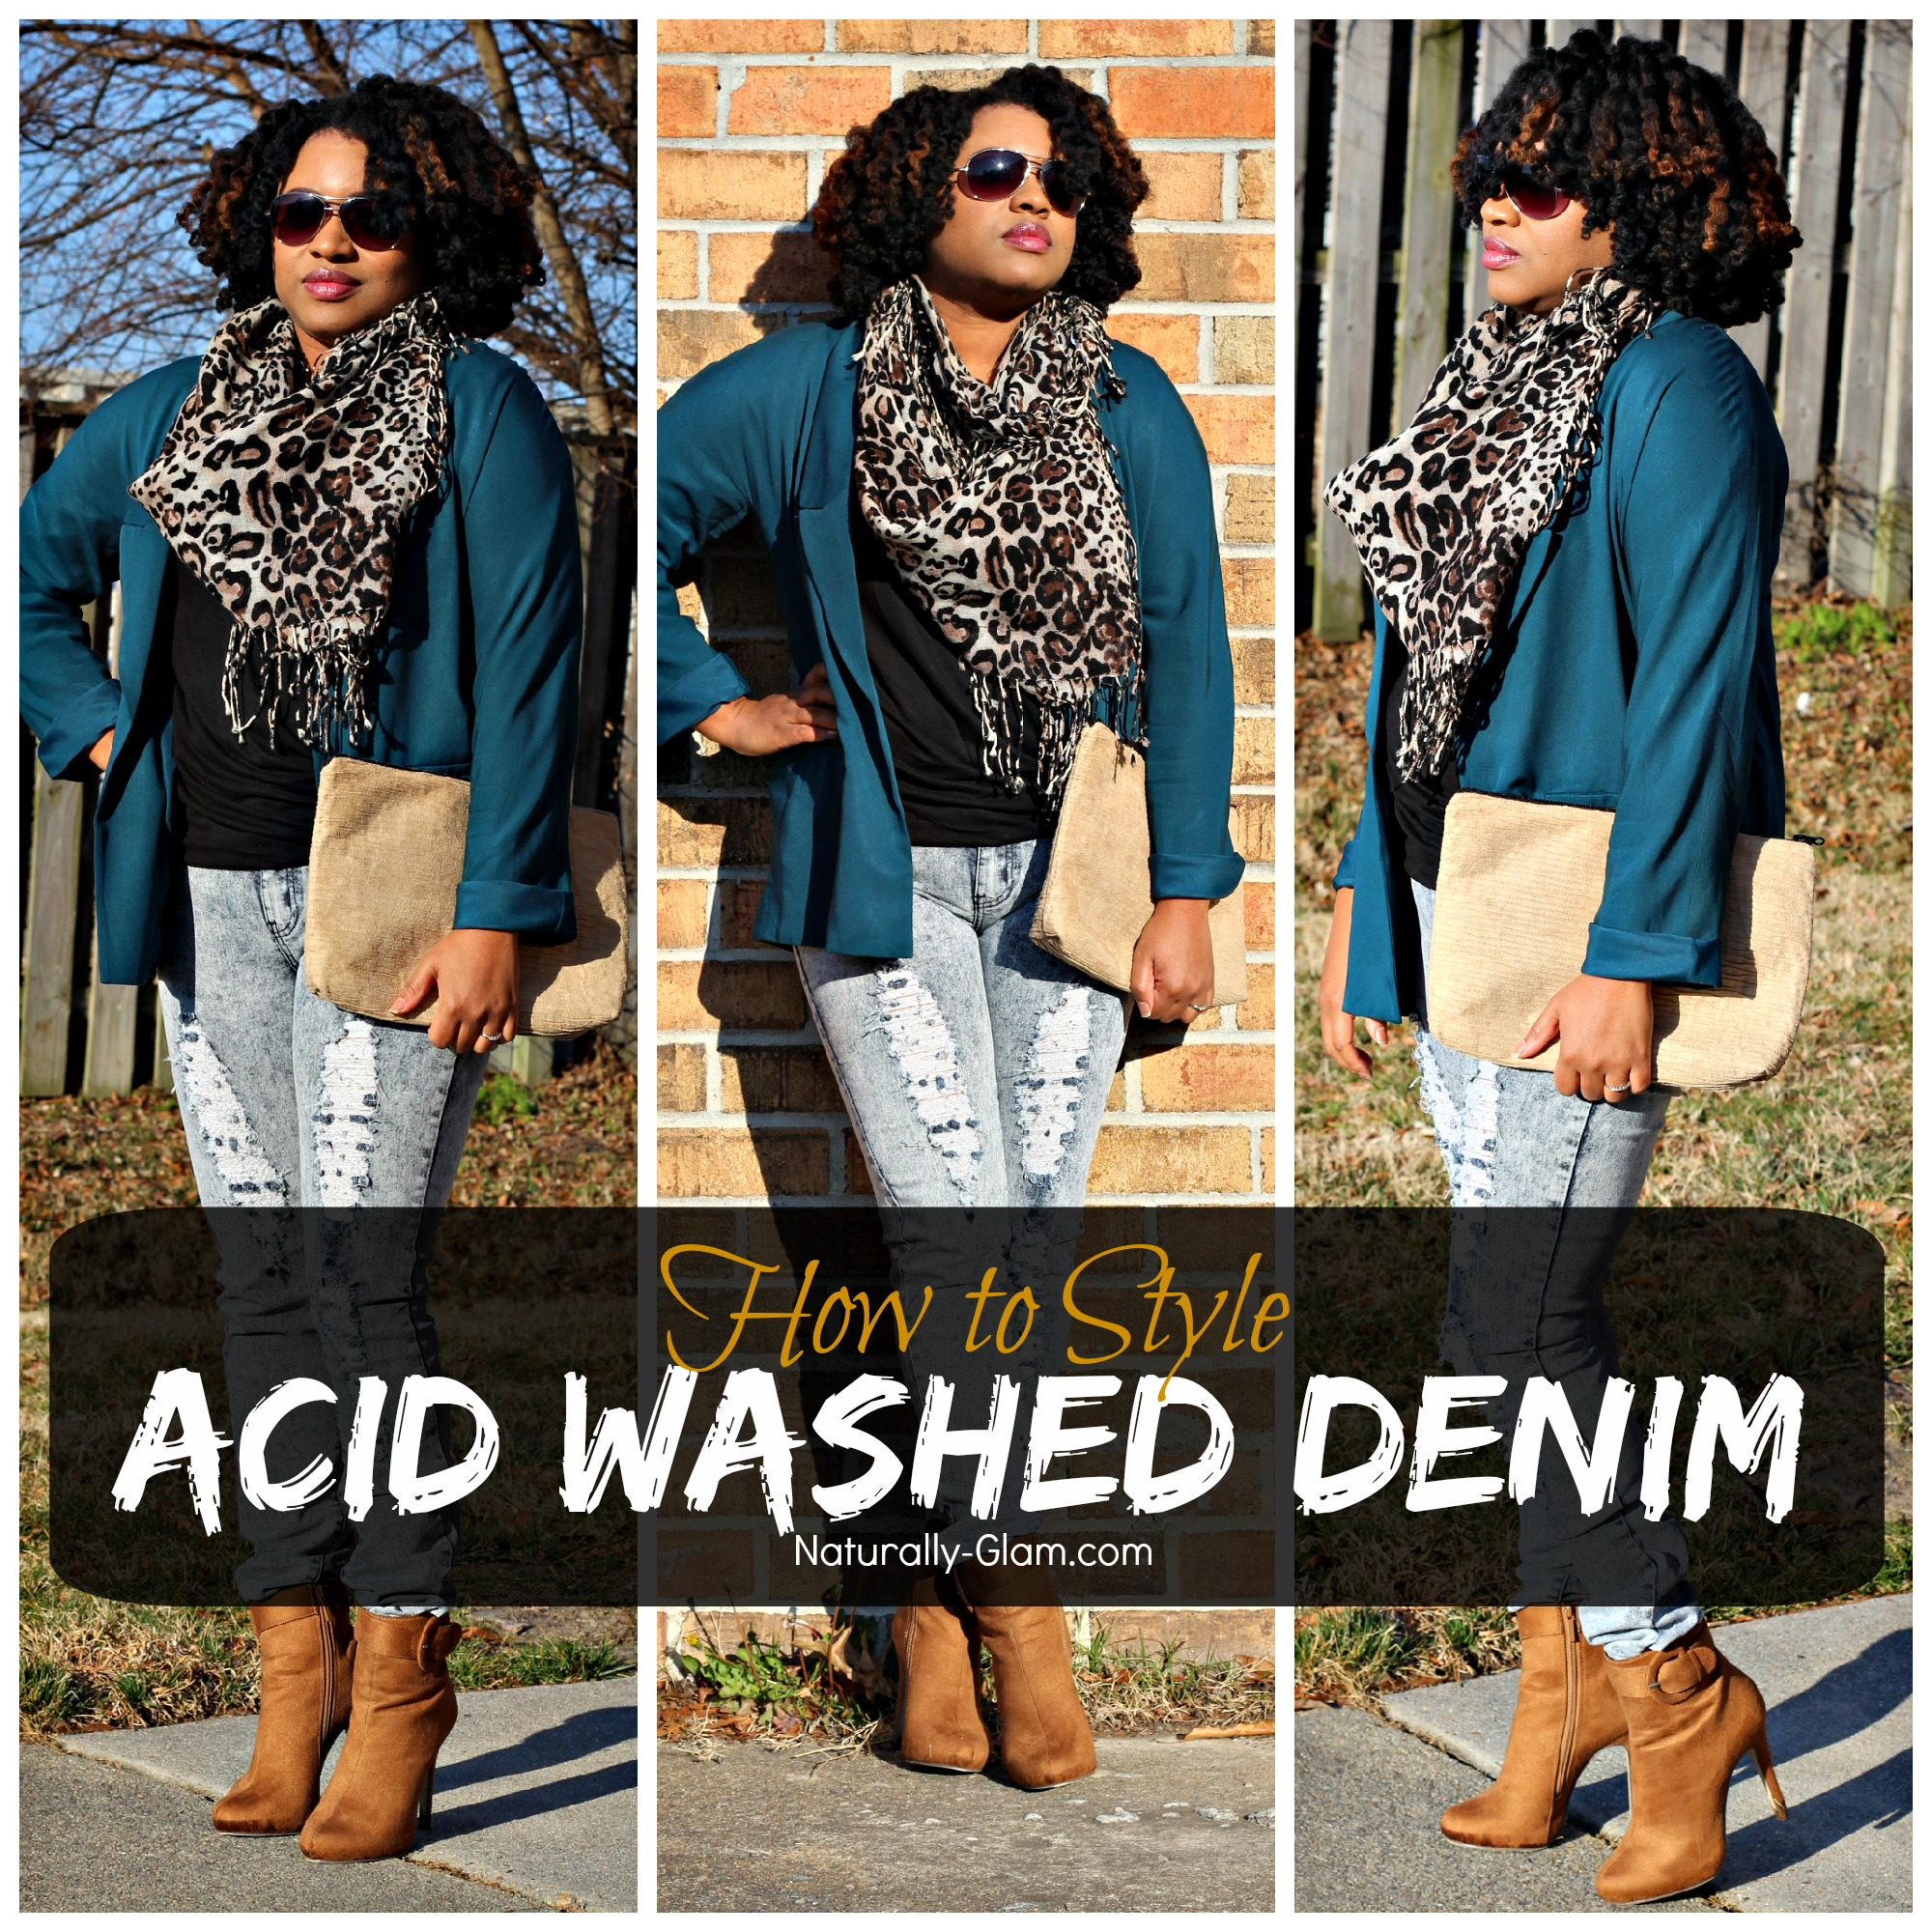 How to Style Acid Washed Denim